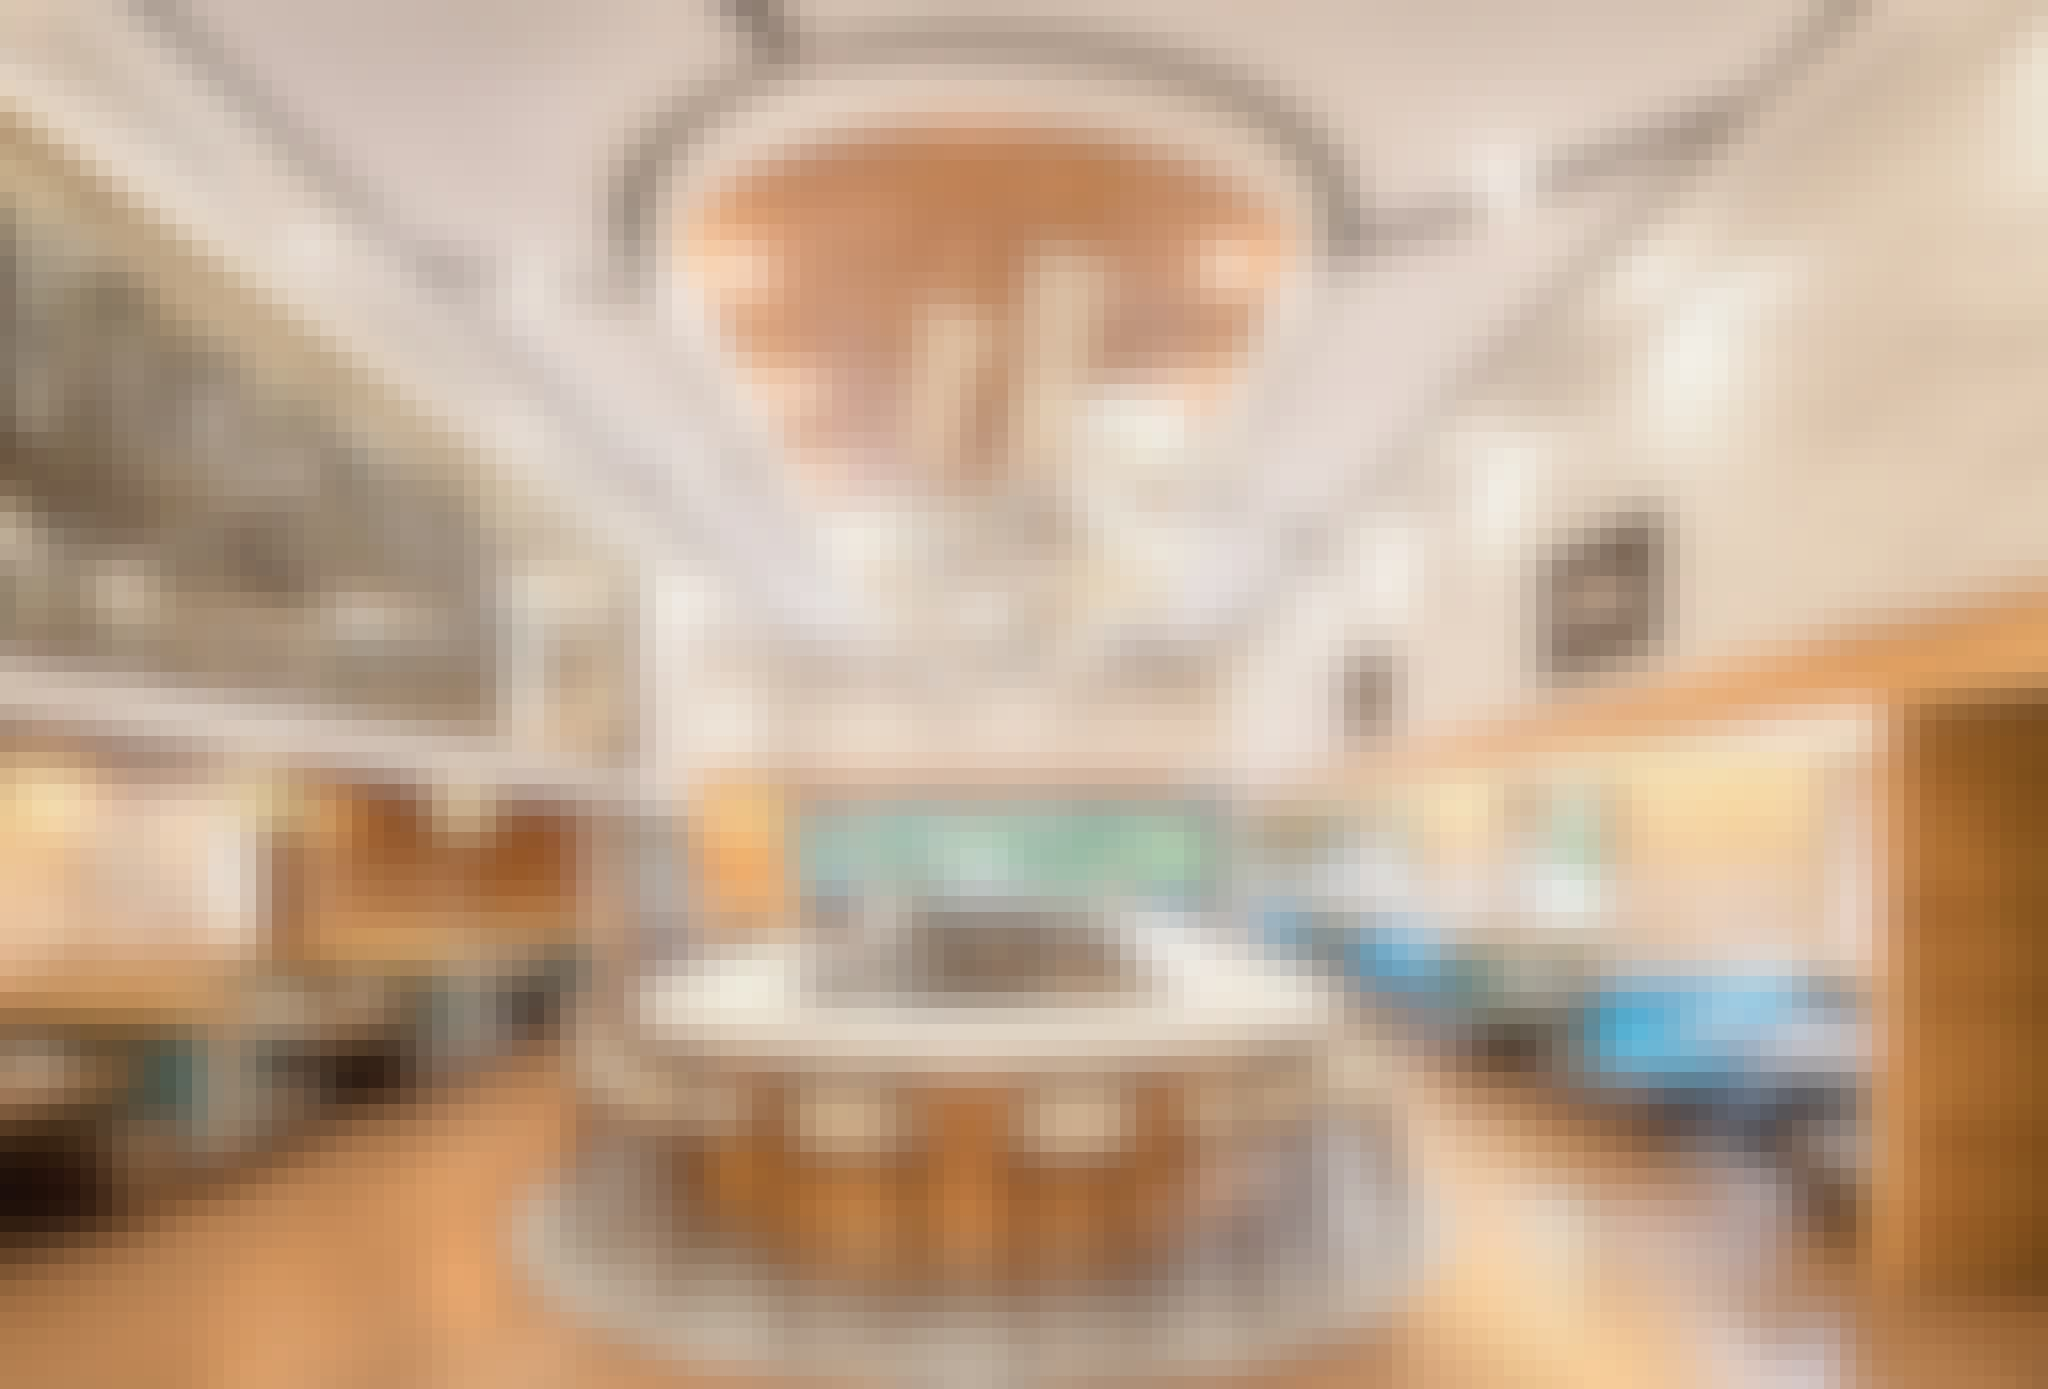 NanaWall moveable glass systems in restaurant design